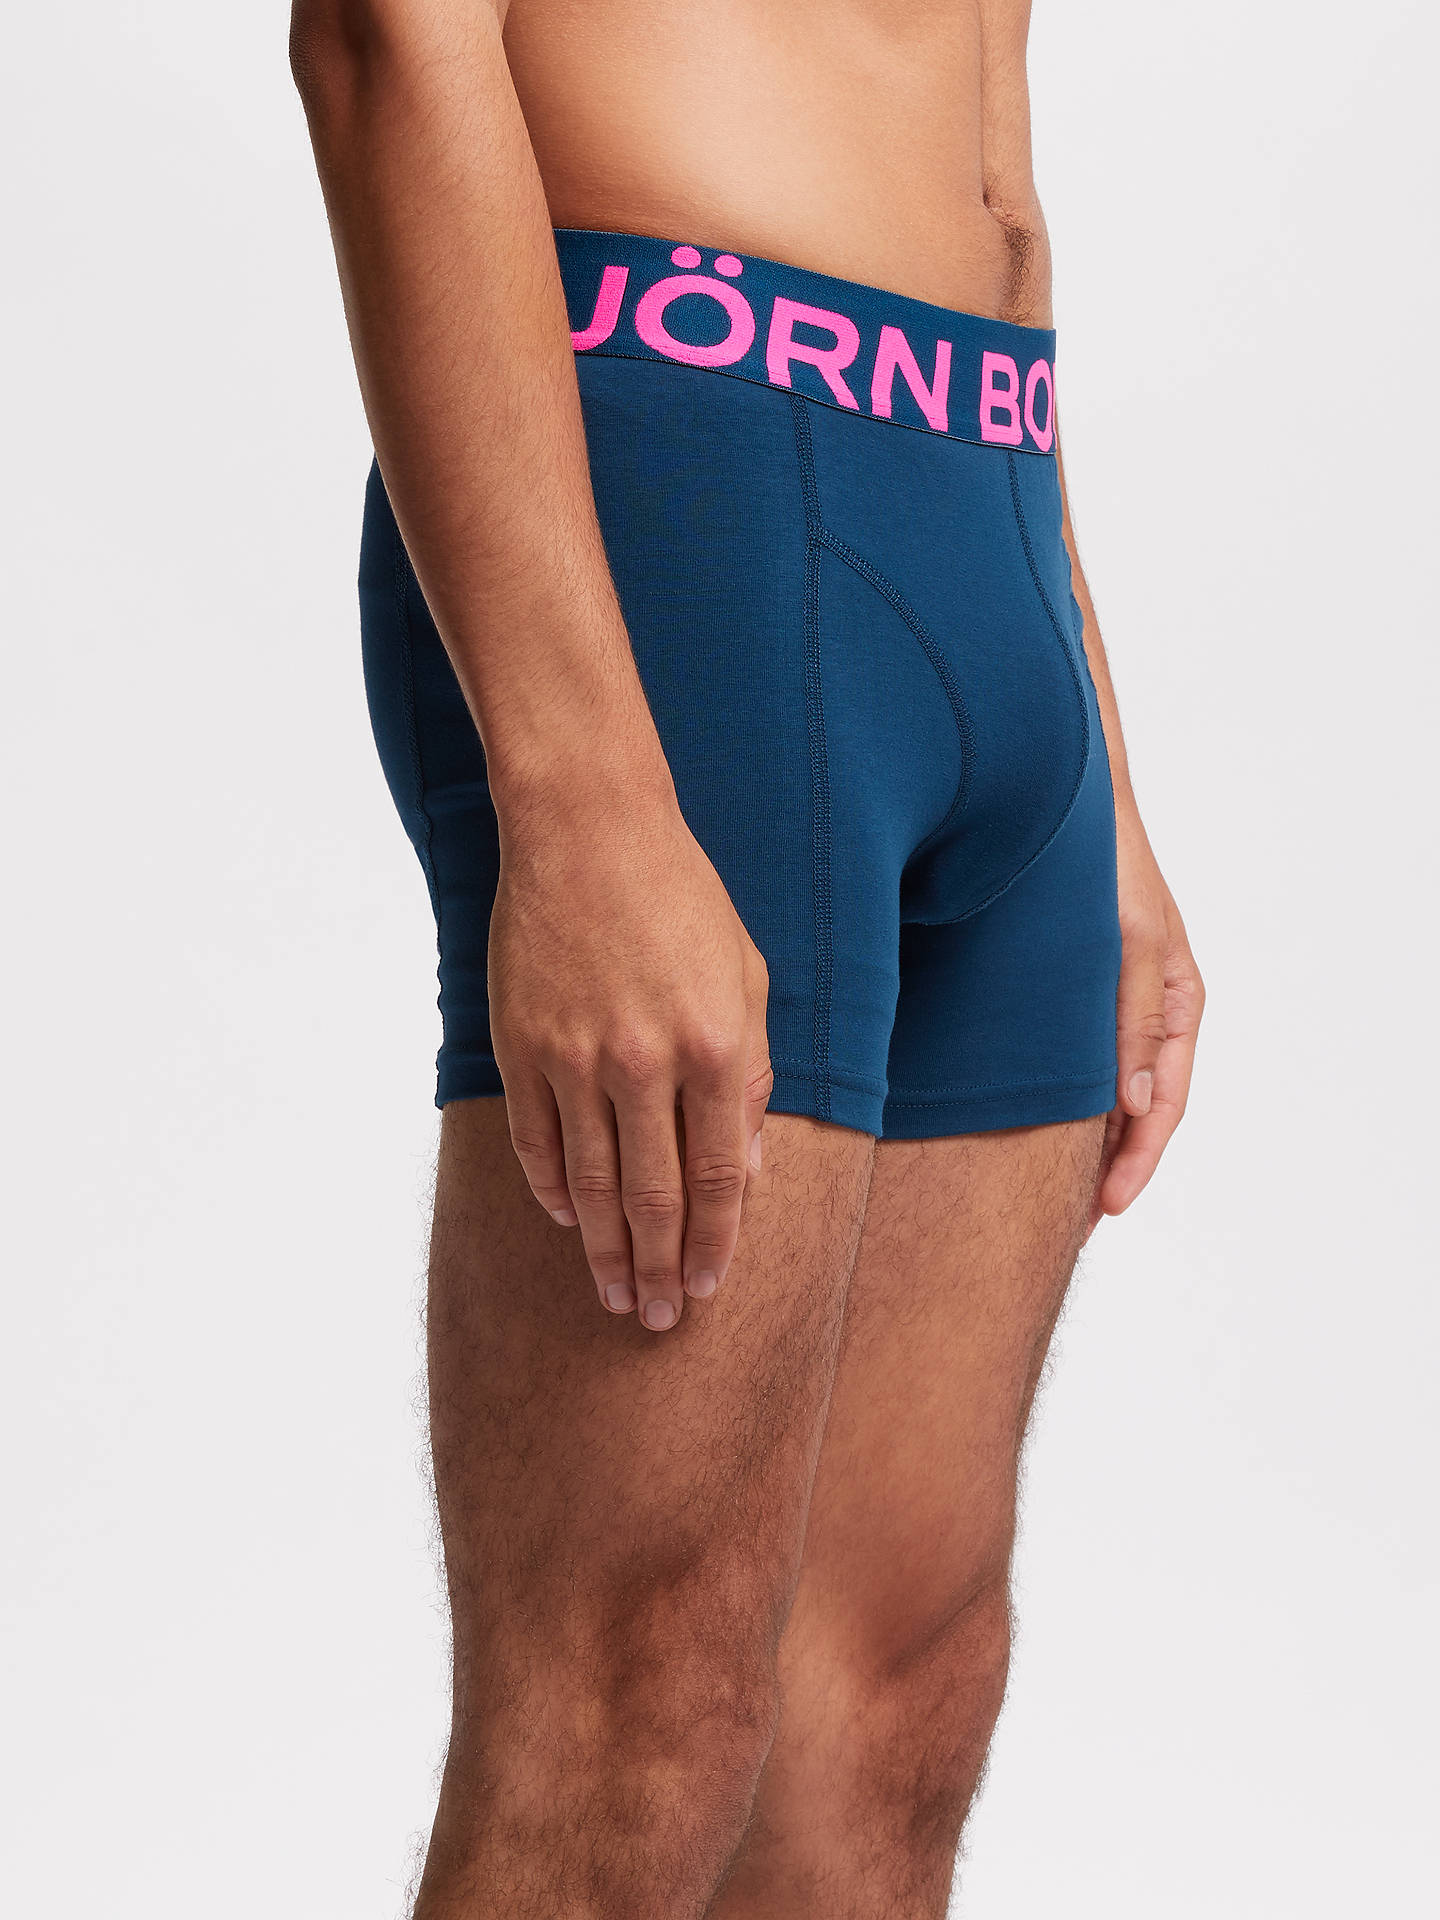 BuyBjörn Borg Solid Neon Sammy Trunks, Pack of 2, Blue/Multi, S Online at johnlewis.com